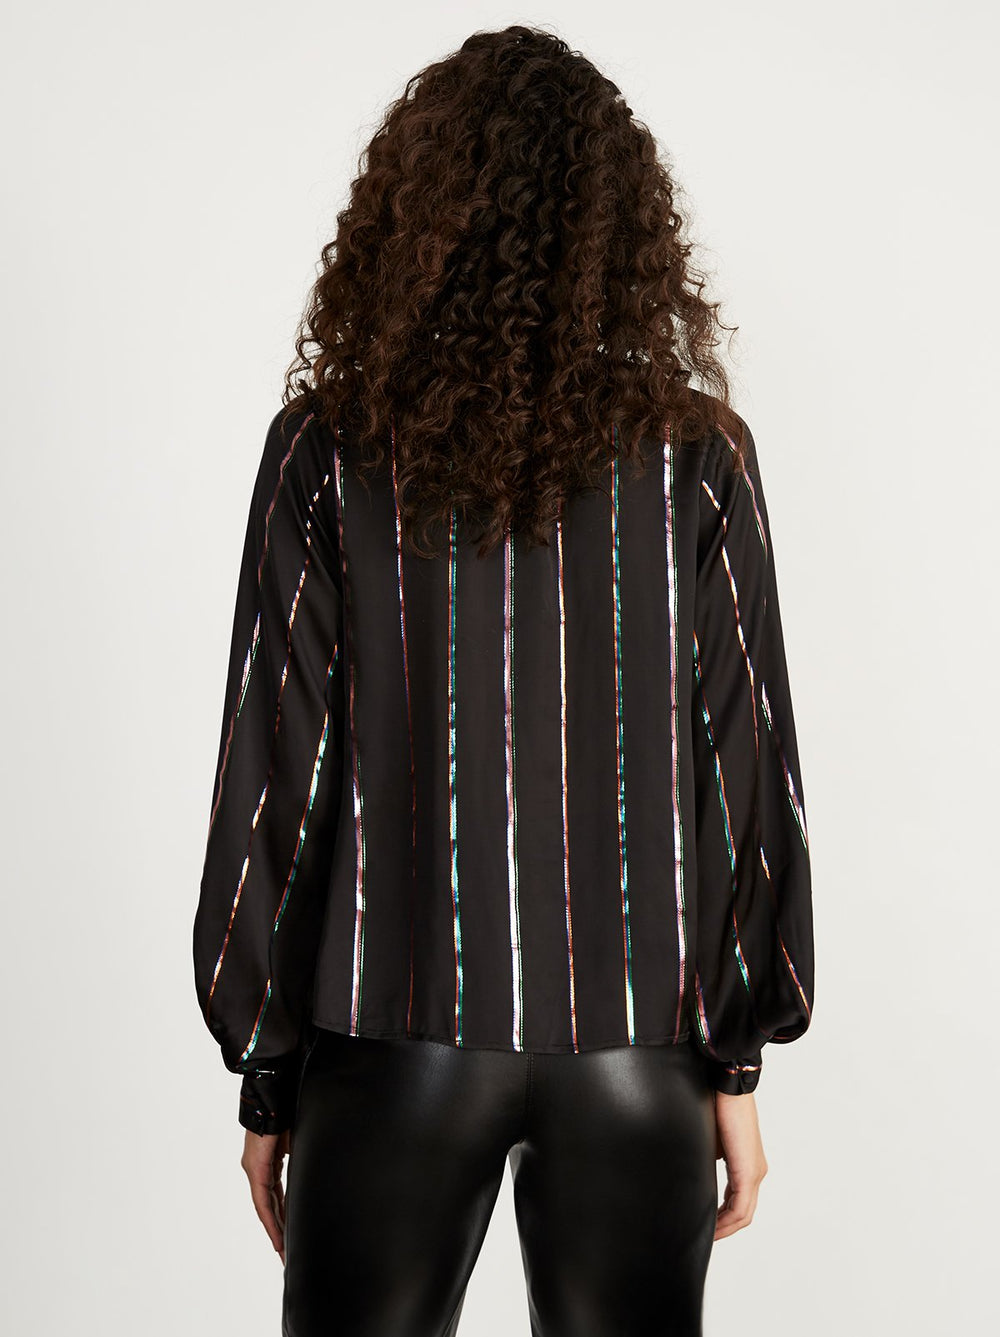 Carmen Metallic Stripe Blouse by KITRI Studio